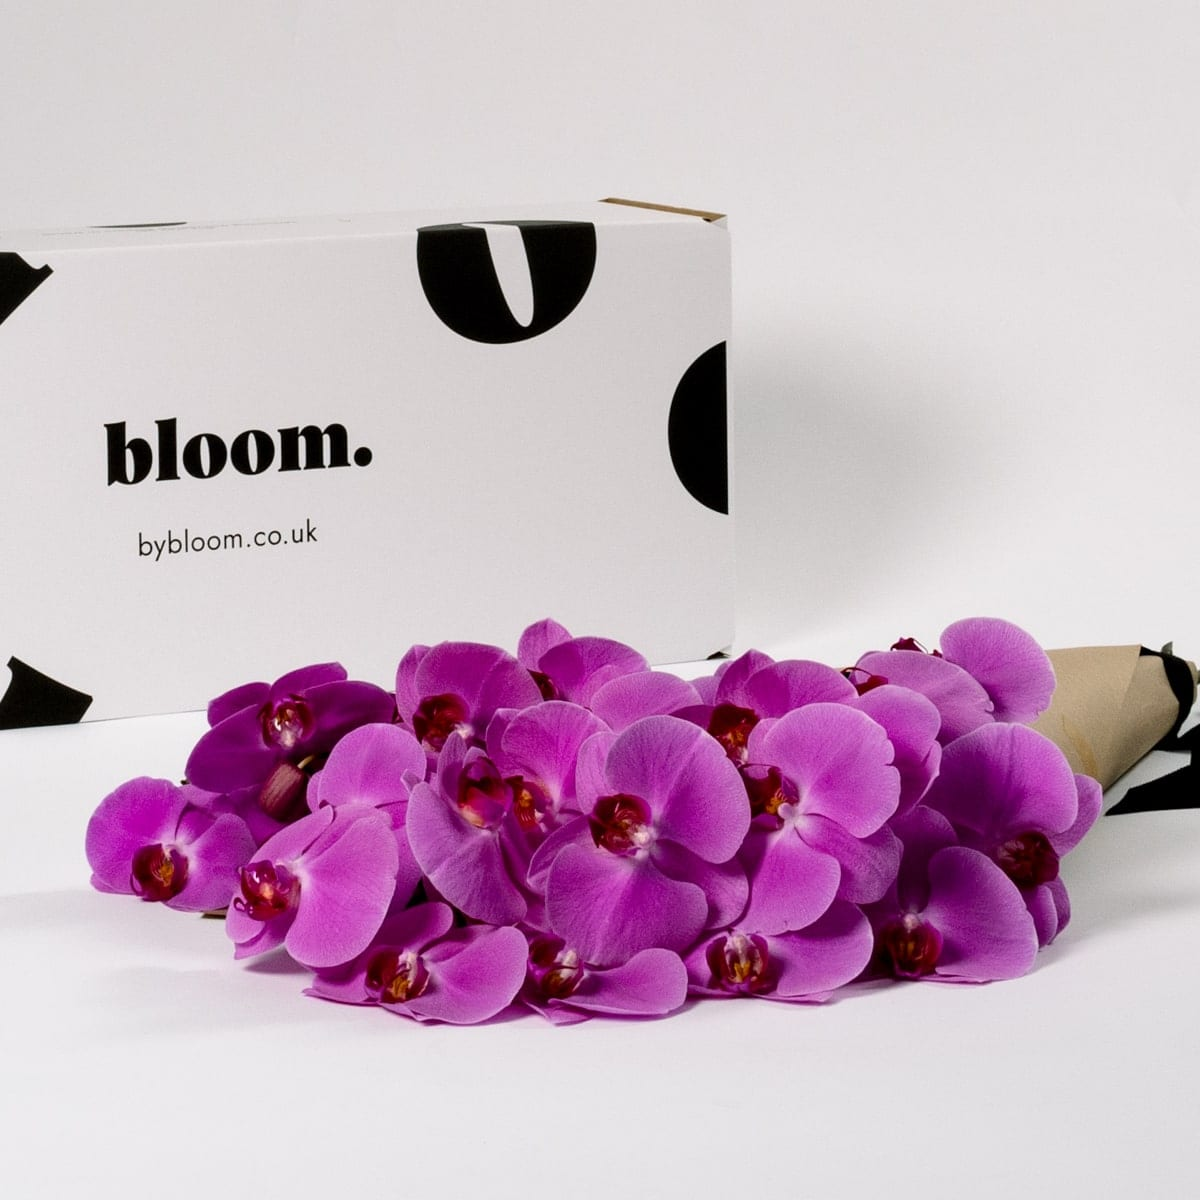 Bloom Flower Delivery | Cerise Pink Phalaenopsis Orchid